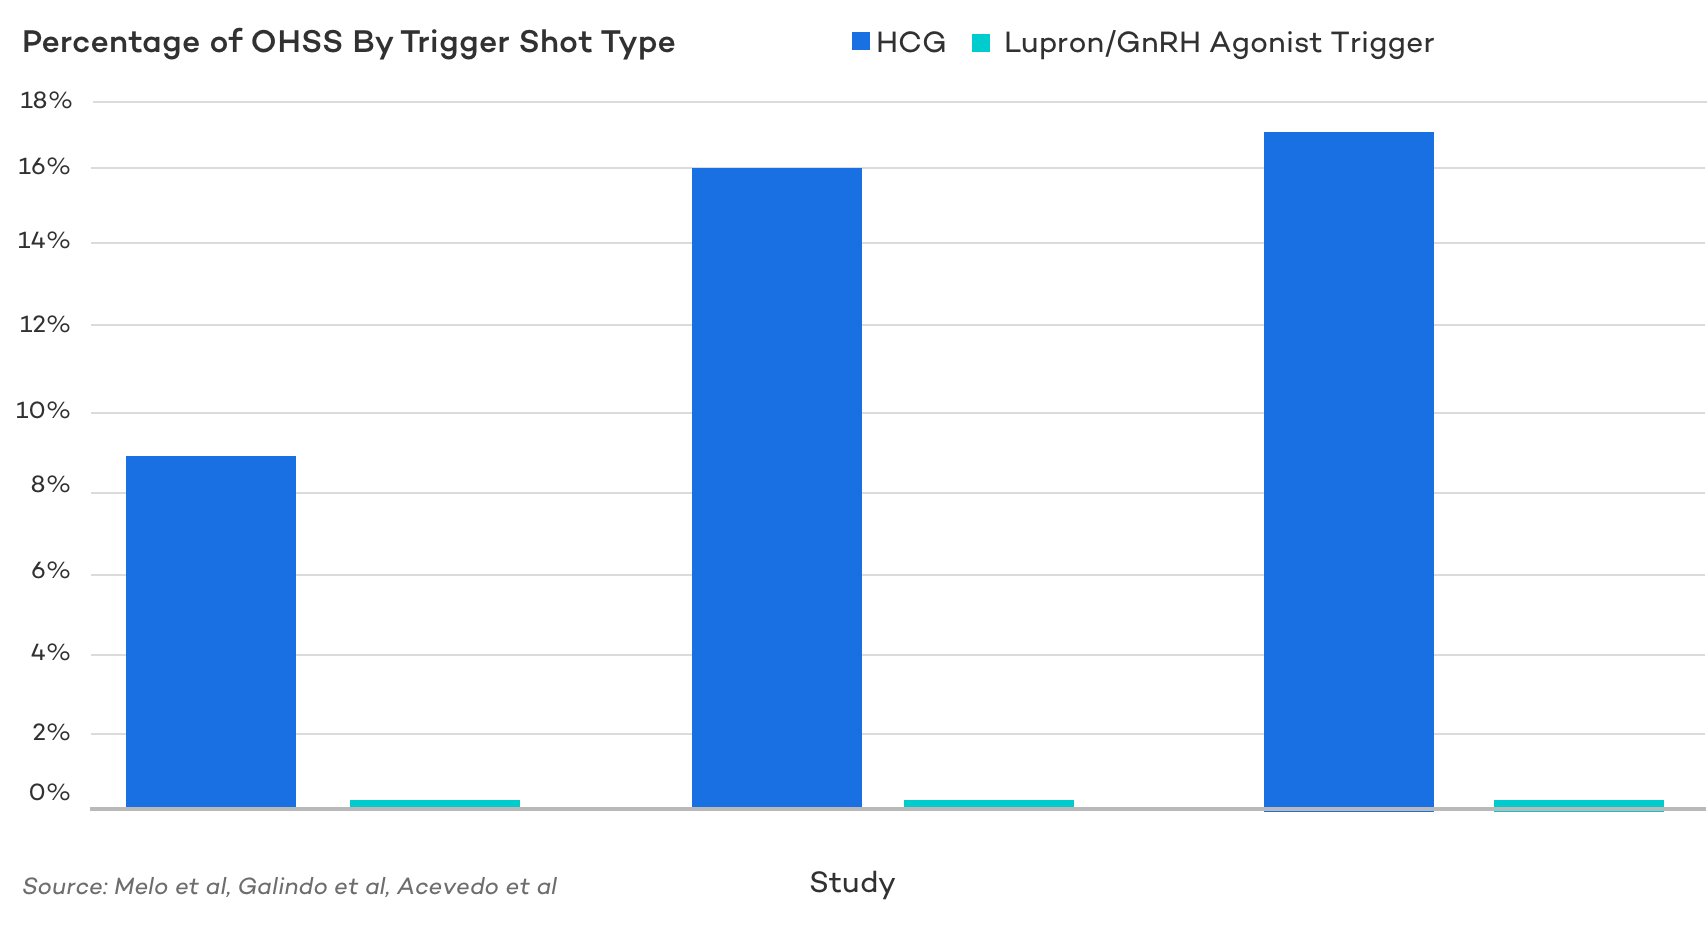 Percentage of OHSS By Trigger Shot Type